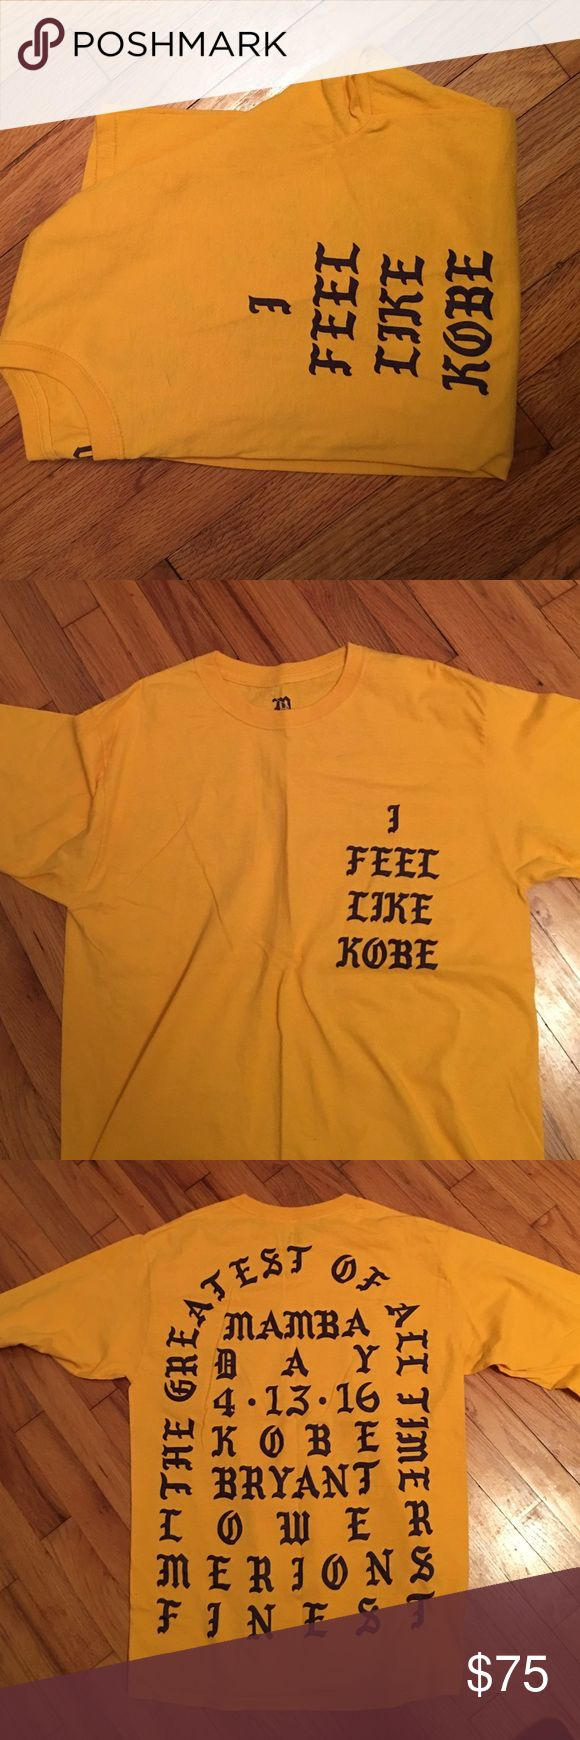 I Feel Like Kobe Yeezy Long Sleeve Shirt Long sleeve I Feel Like Kobe Shirt. Made by Kanye West for Kobe's last game. Part of the Pablo/ Yeezy clothing line. 100 percent authentic purchased from Kanye West's Website. Size medium. Washed once, never worn. Yeezy Shirts Tees - Long Sleeve